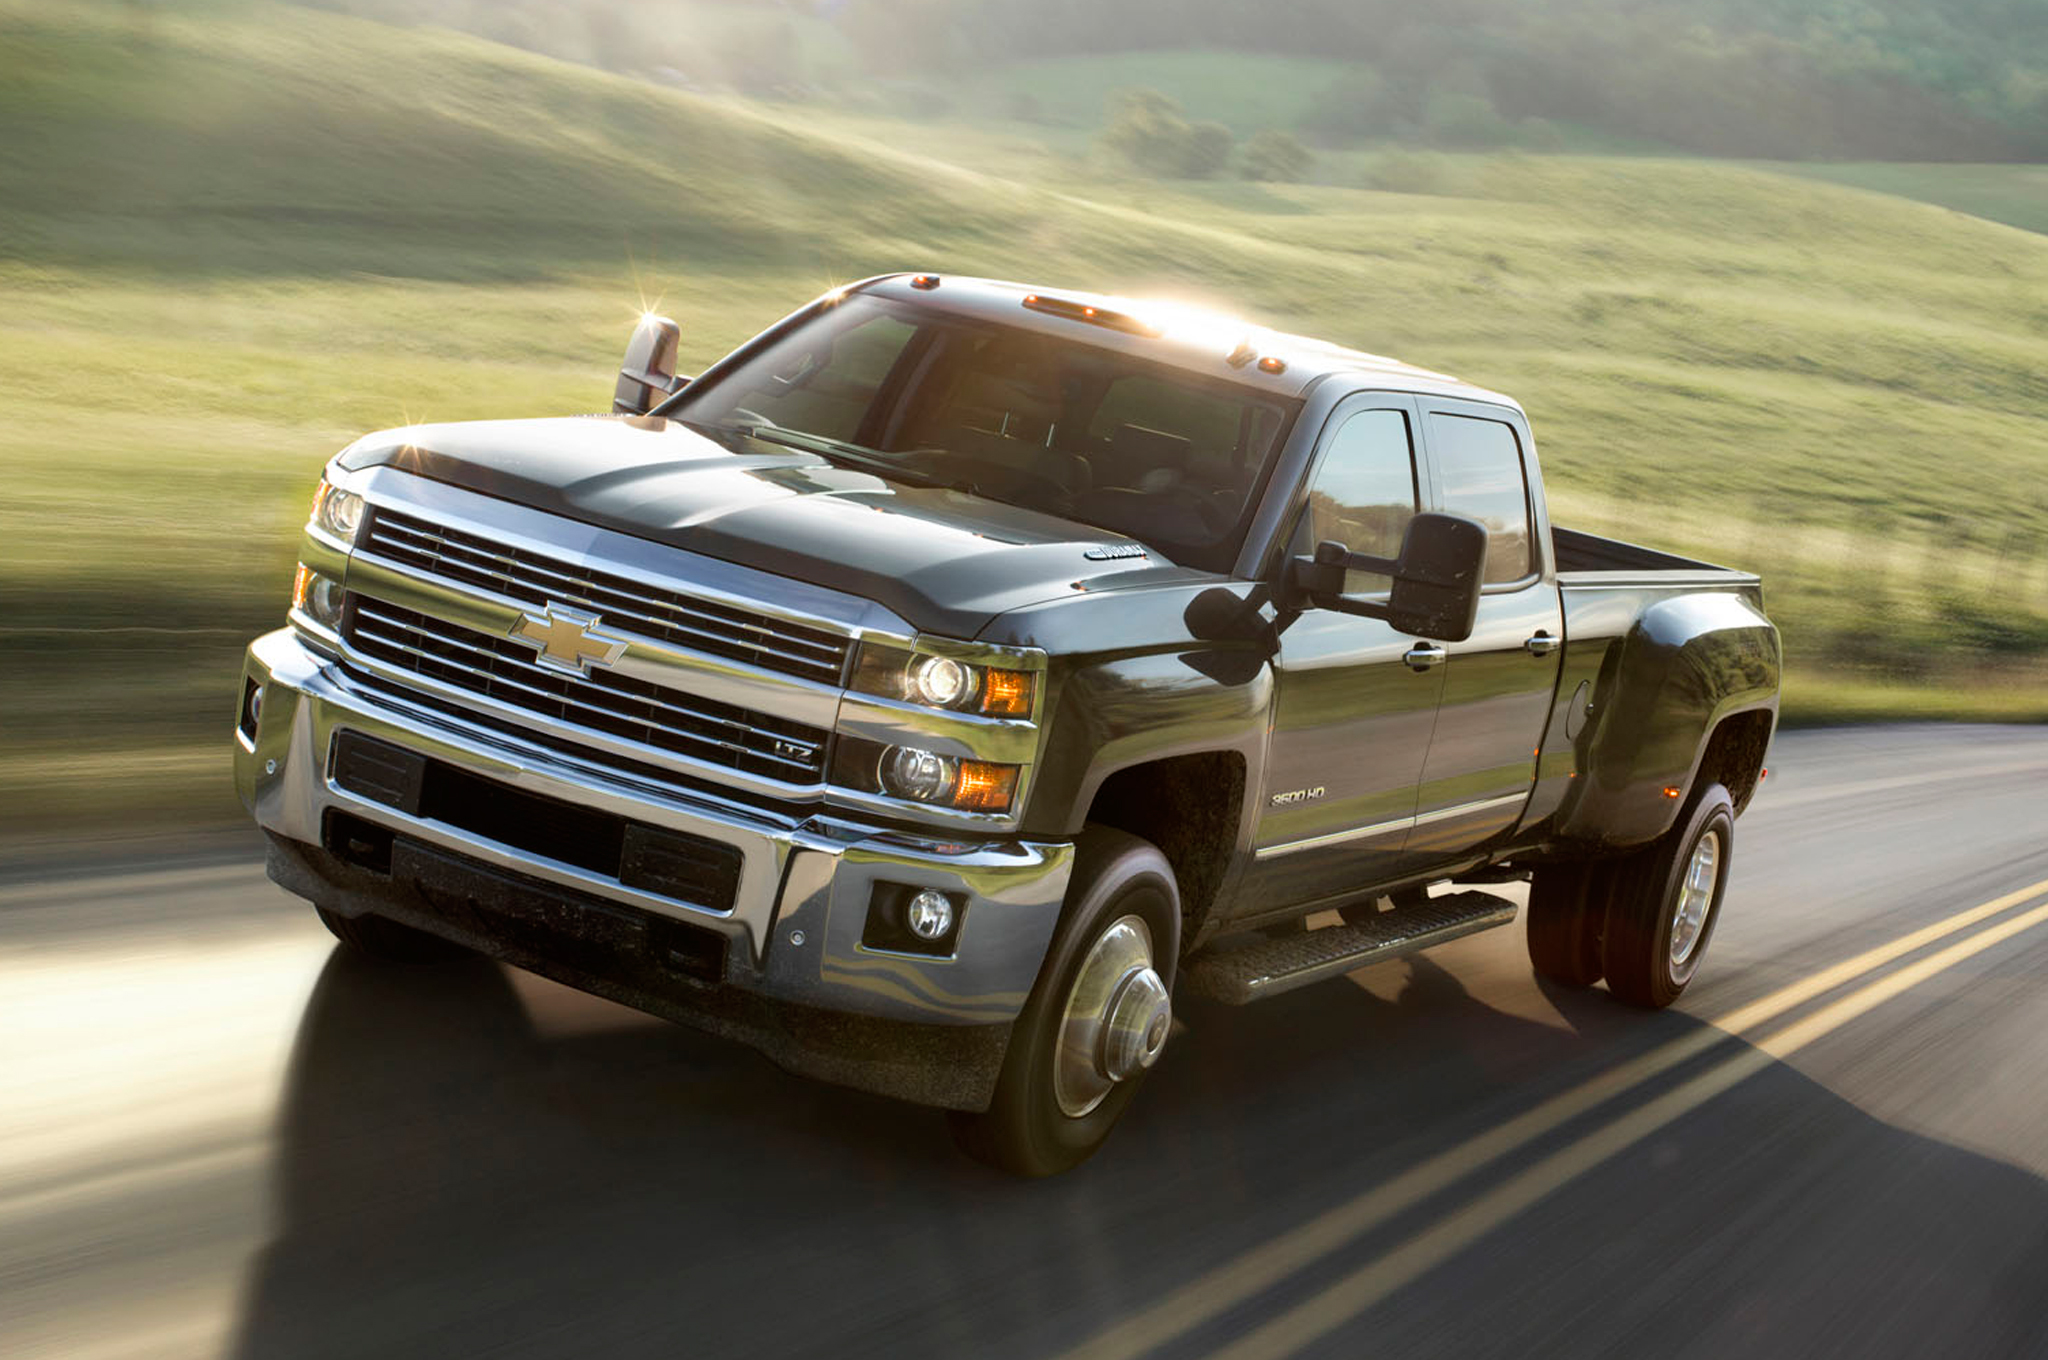 2015 Chevrolet Silverado Hd Performance (View 5 of 6)